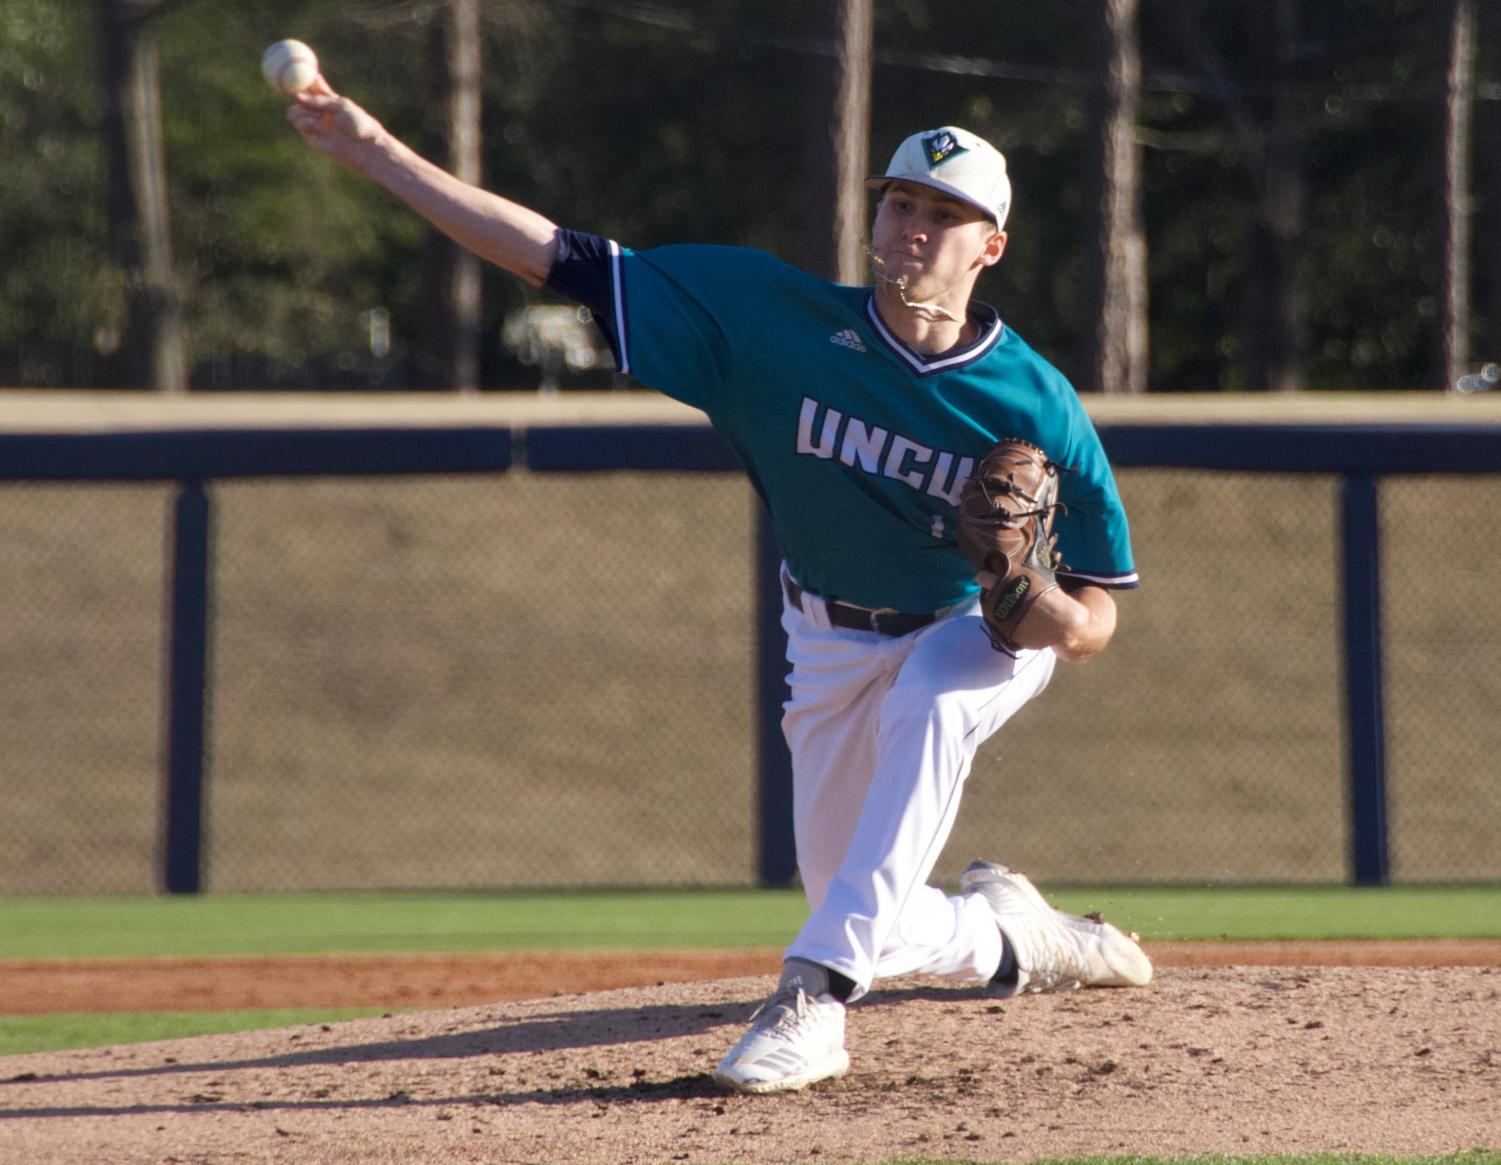 Landen Roupp (14) pitches during UNCW's matchup against Toledo on Wednesday night at Brooks Field.